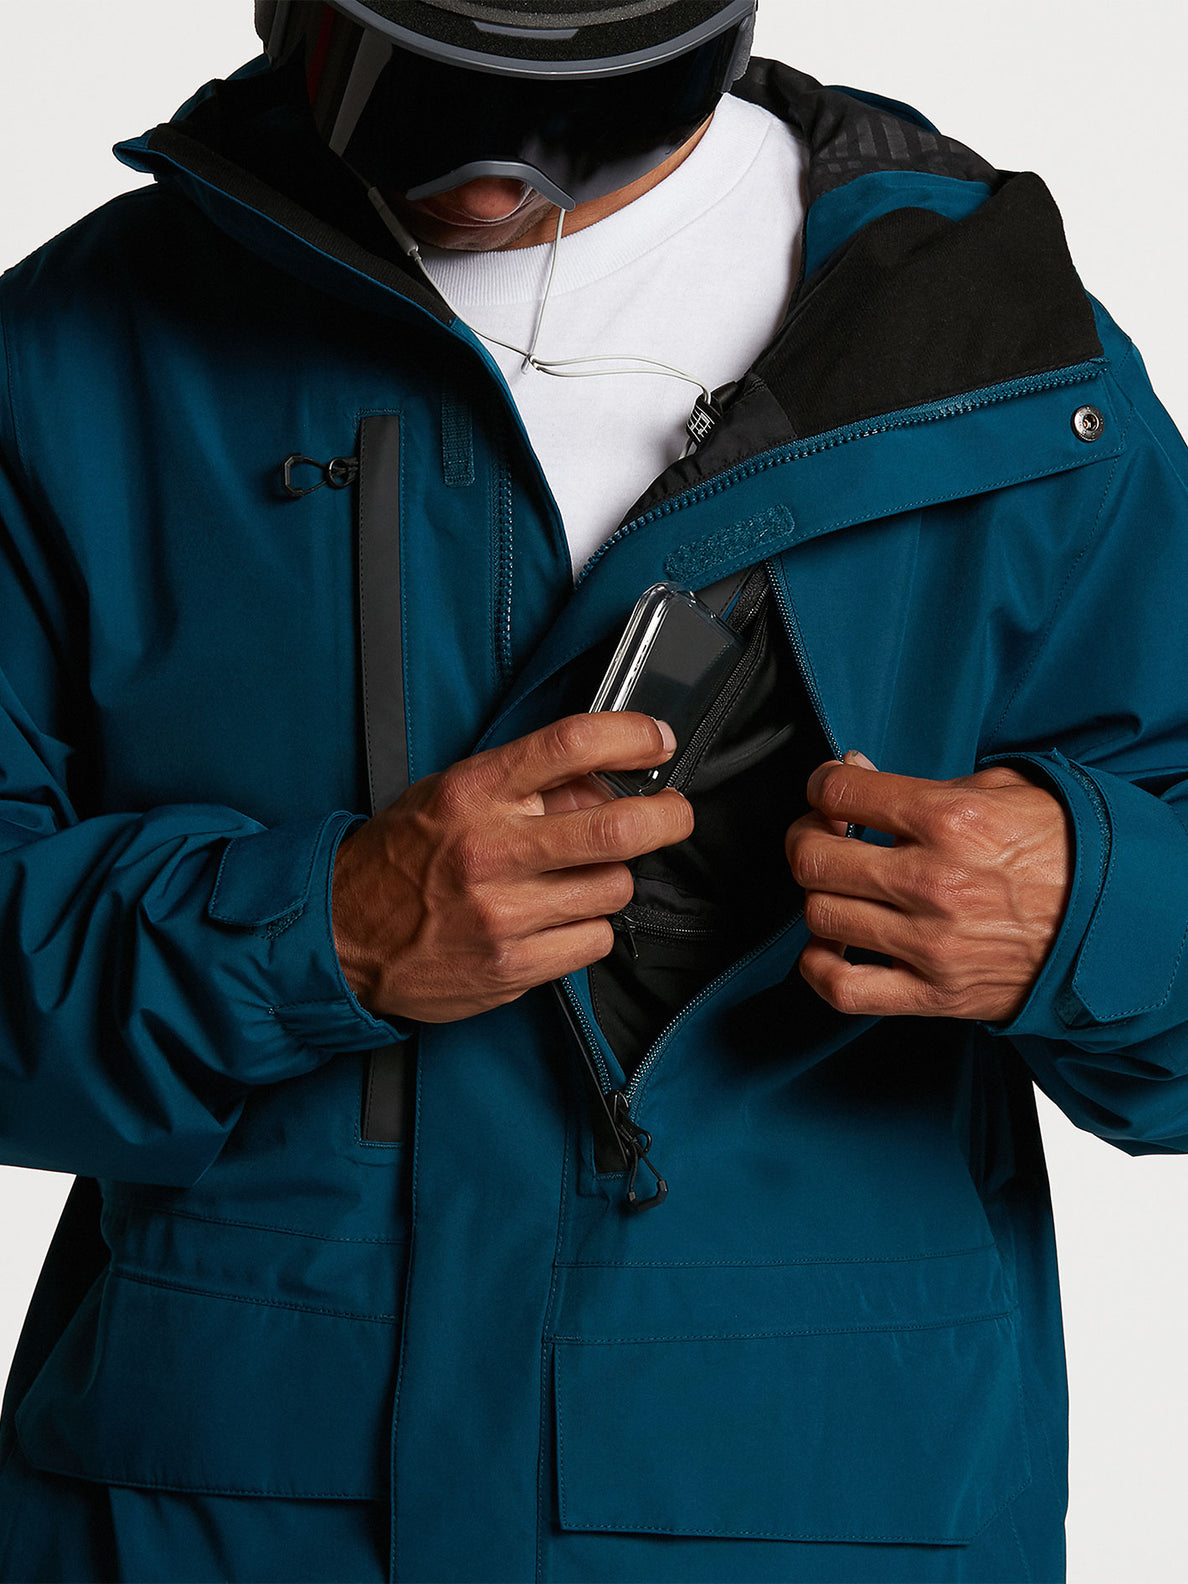 Mens Ten GORE-TEX Jacket - Blue (G0652116_BLU) [07]